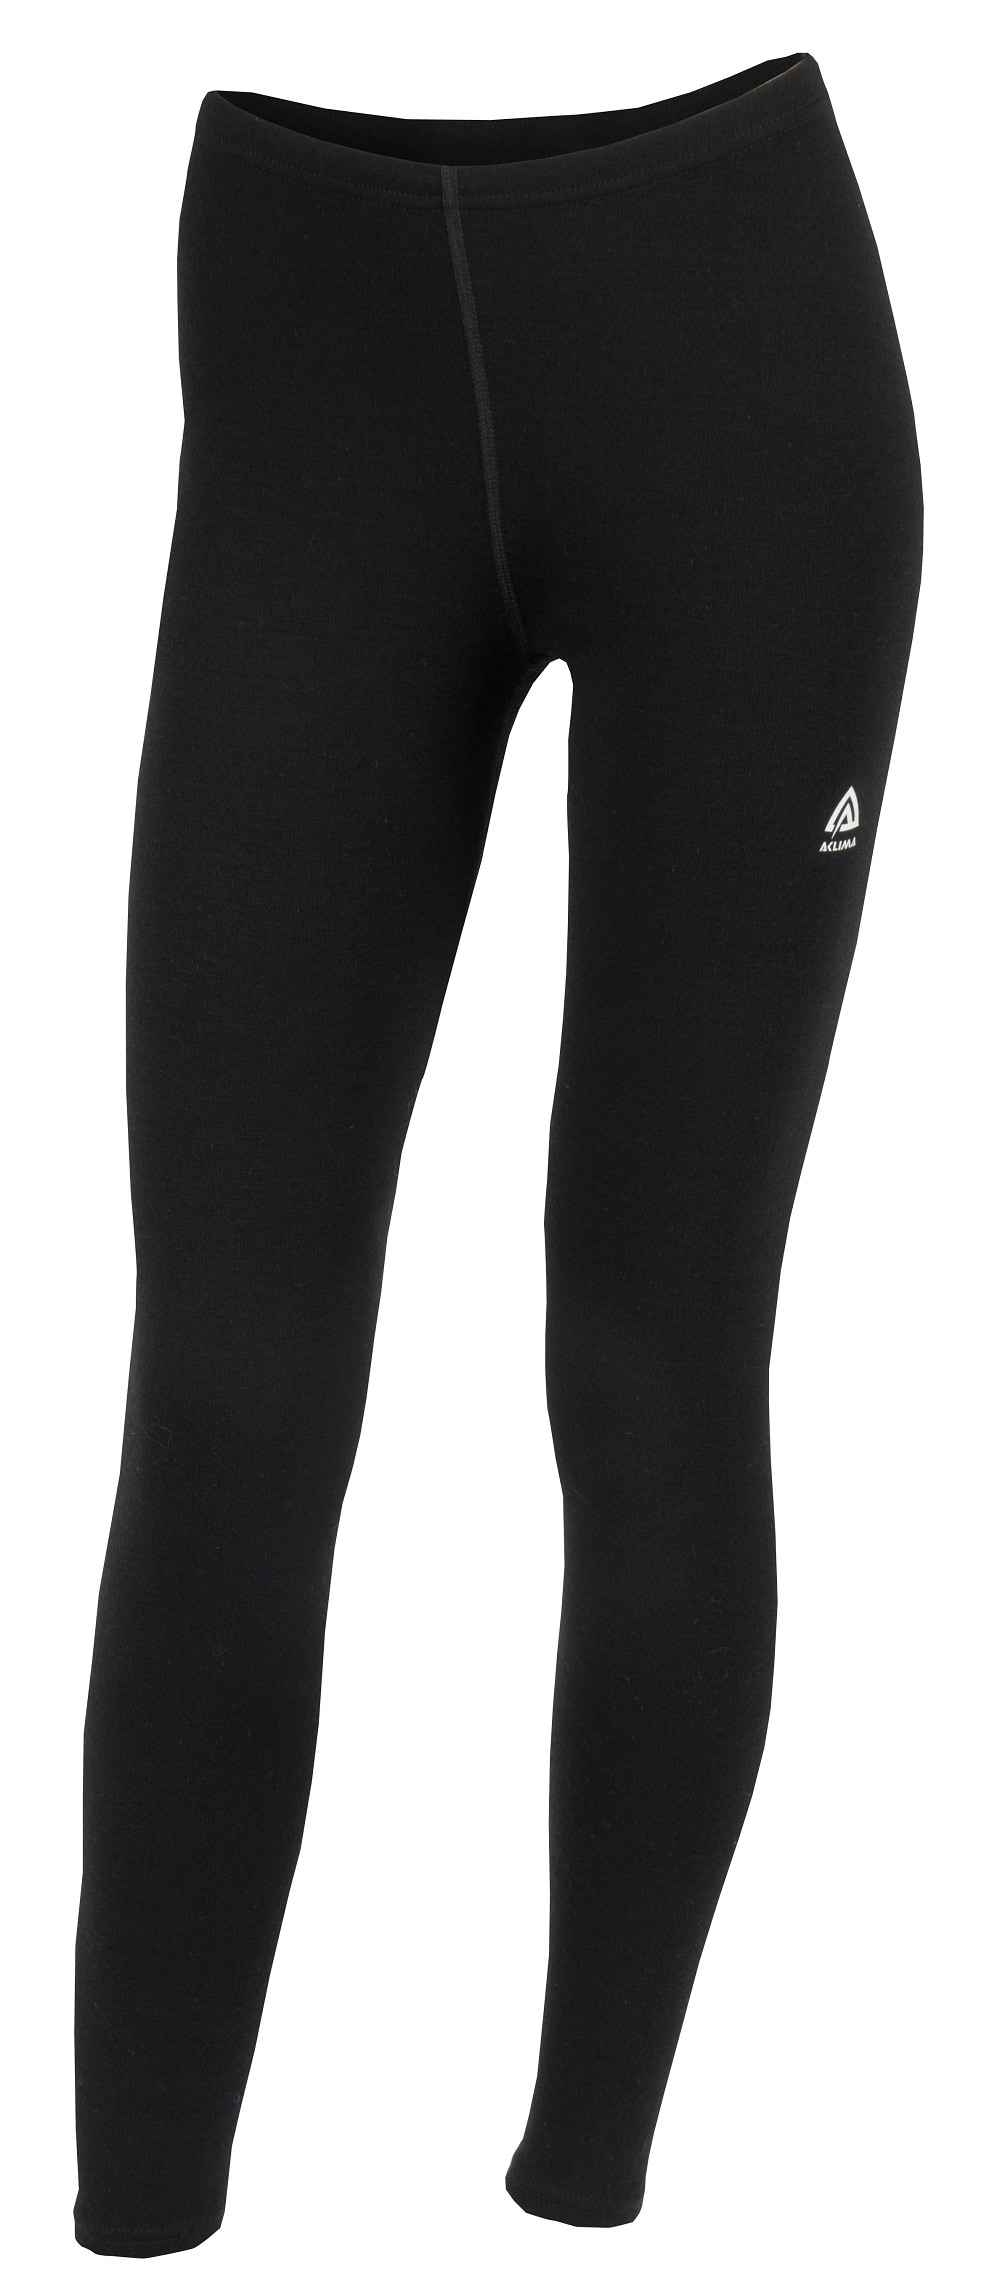 Aclima WarmWool Longs, W's, Jet Black